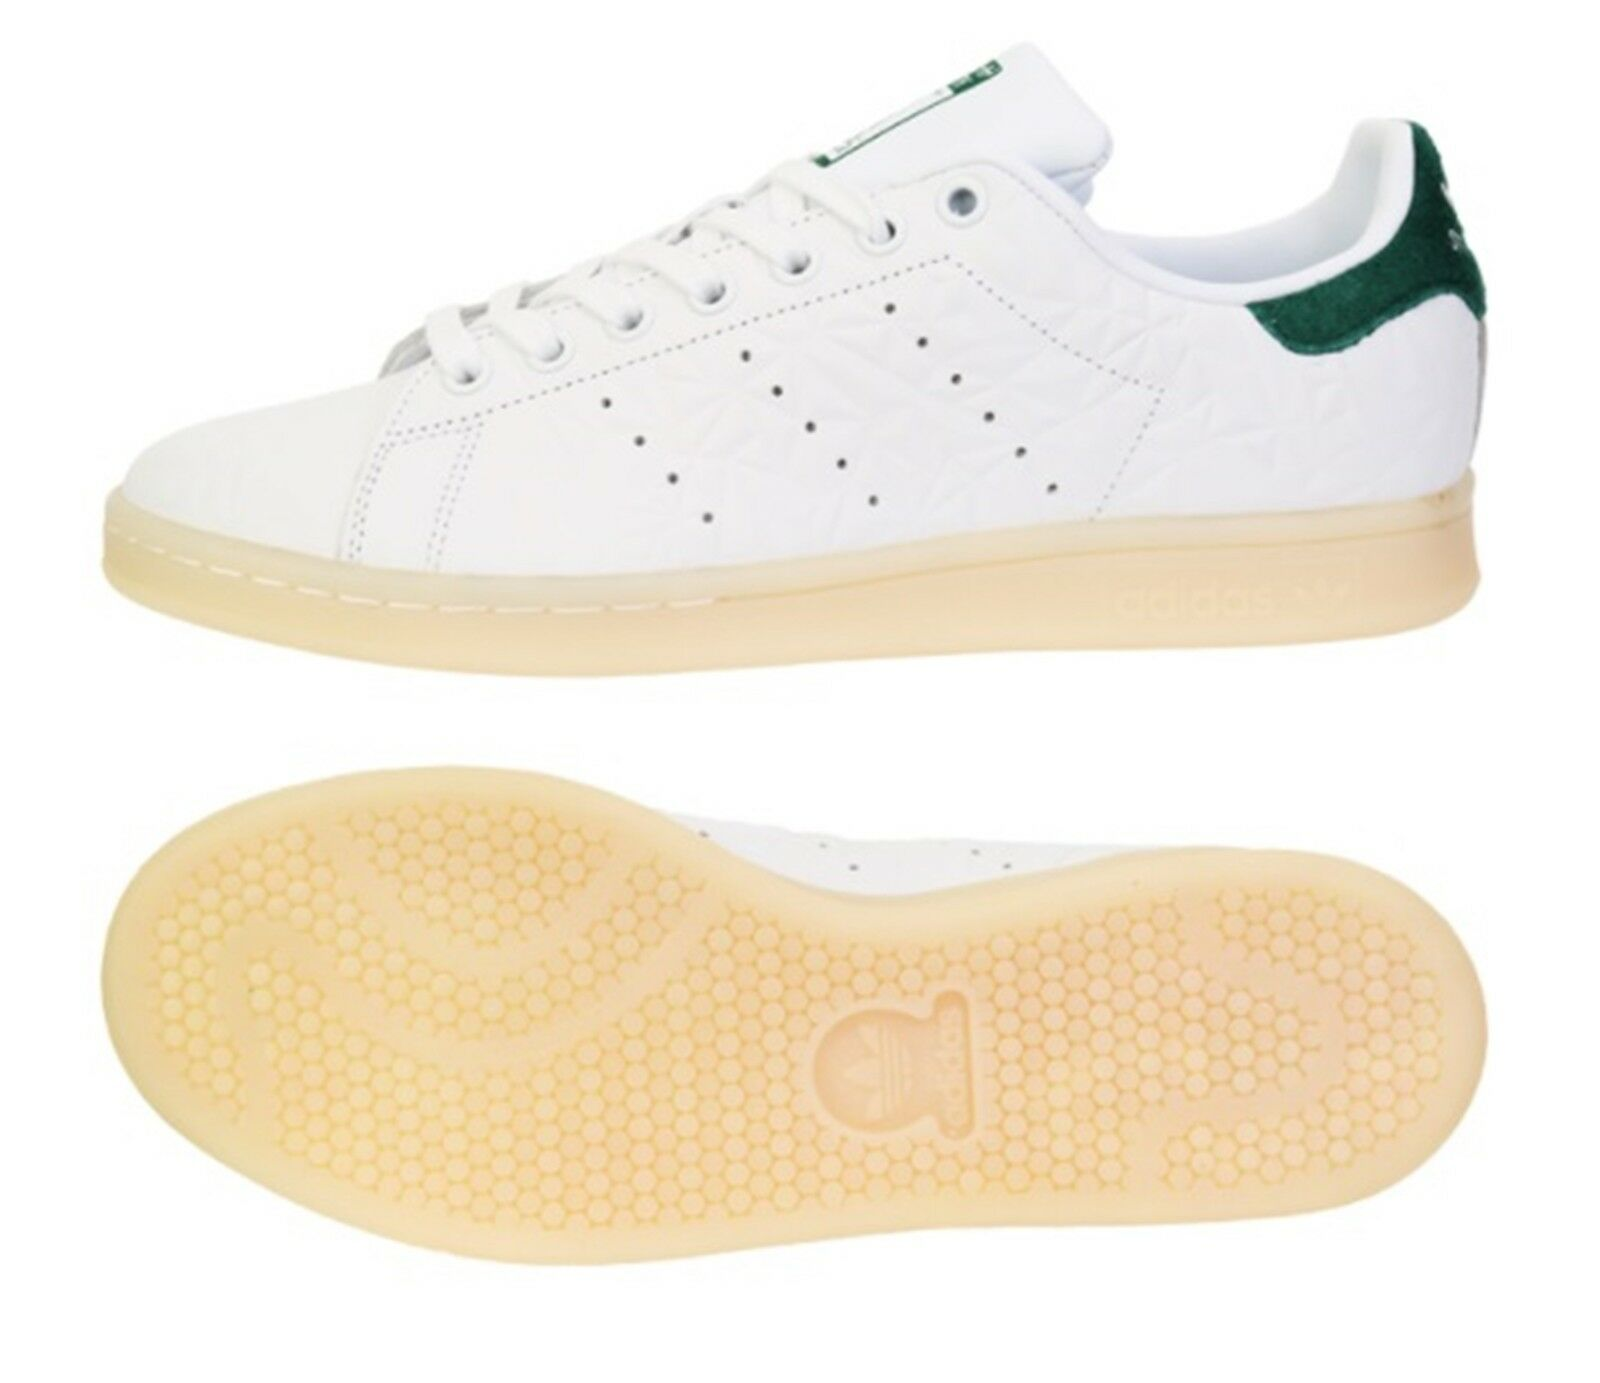 033718b3752f9 Adidas Men Original Stan Smith Training shoes White Running Sneakers shoes  S82253